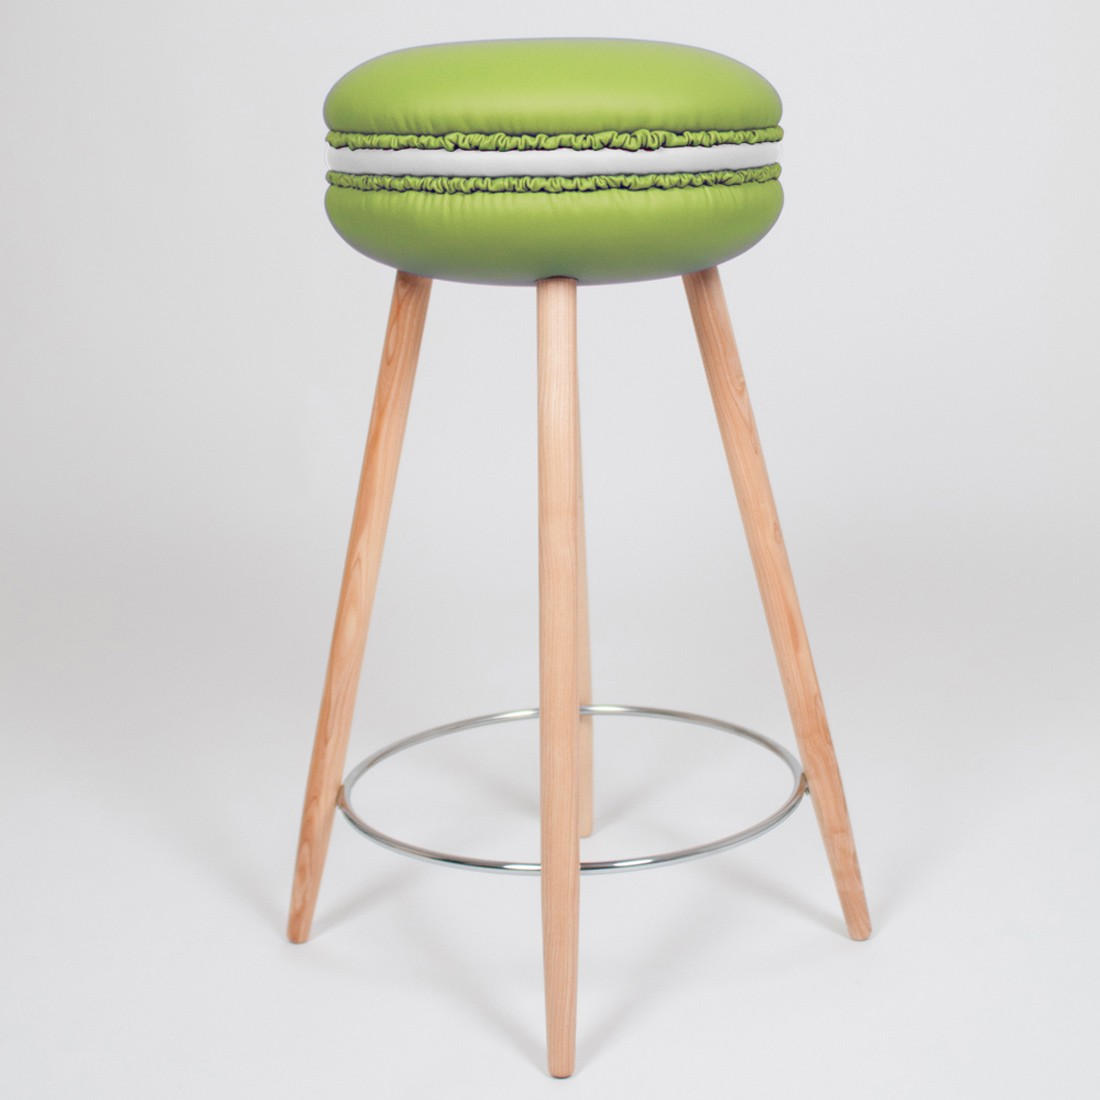 Tabourets De Bar Sur Mesure Tabouret De Bar Le Guide Ultime